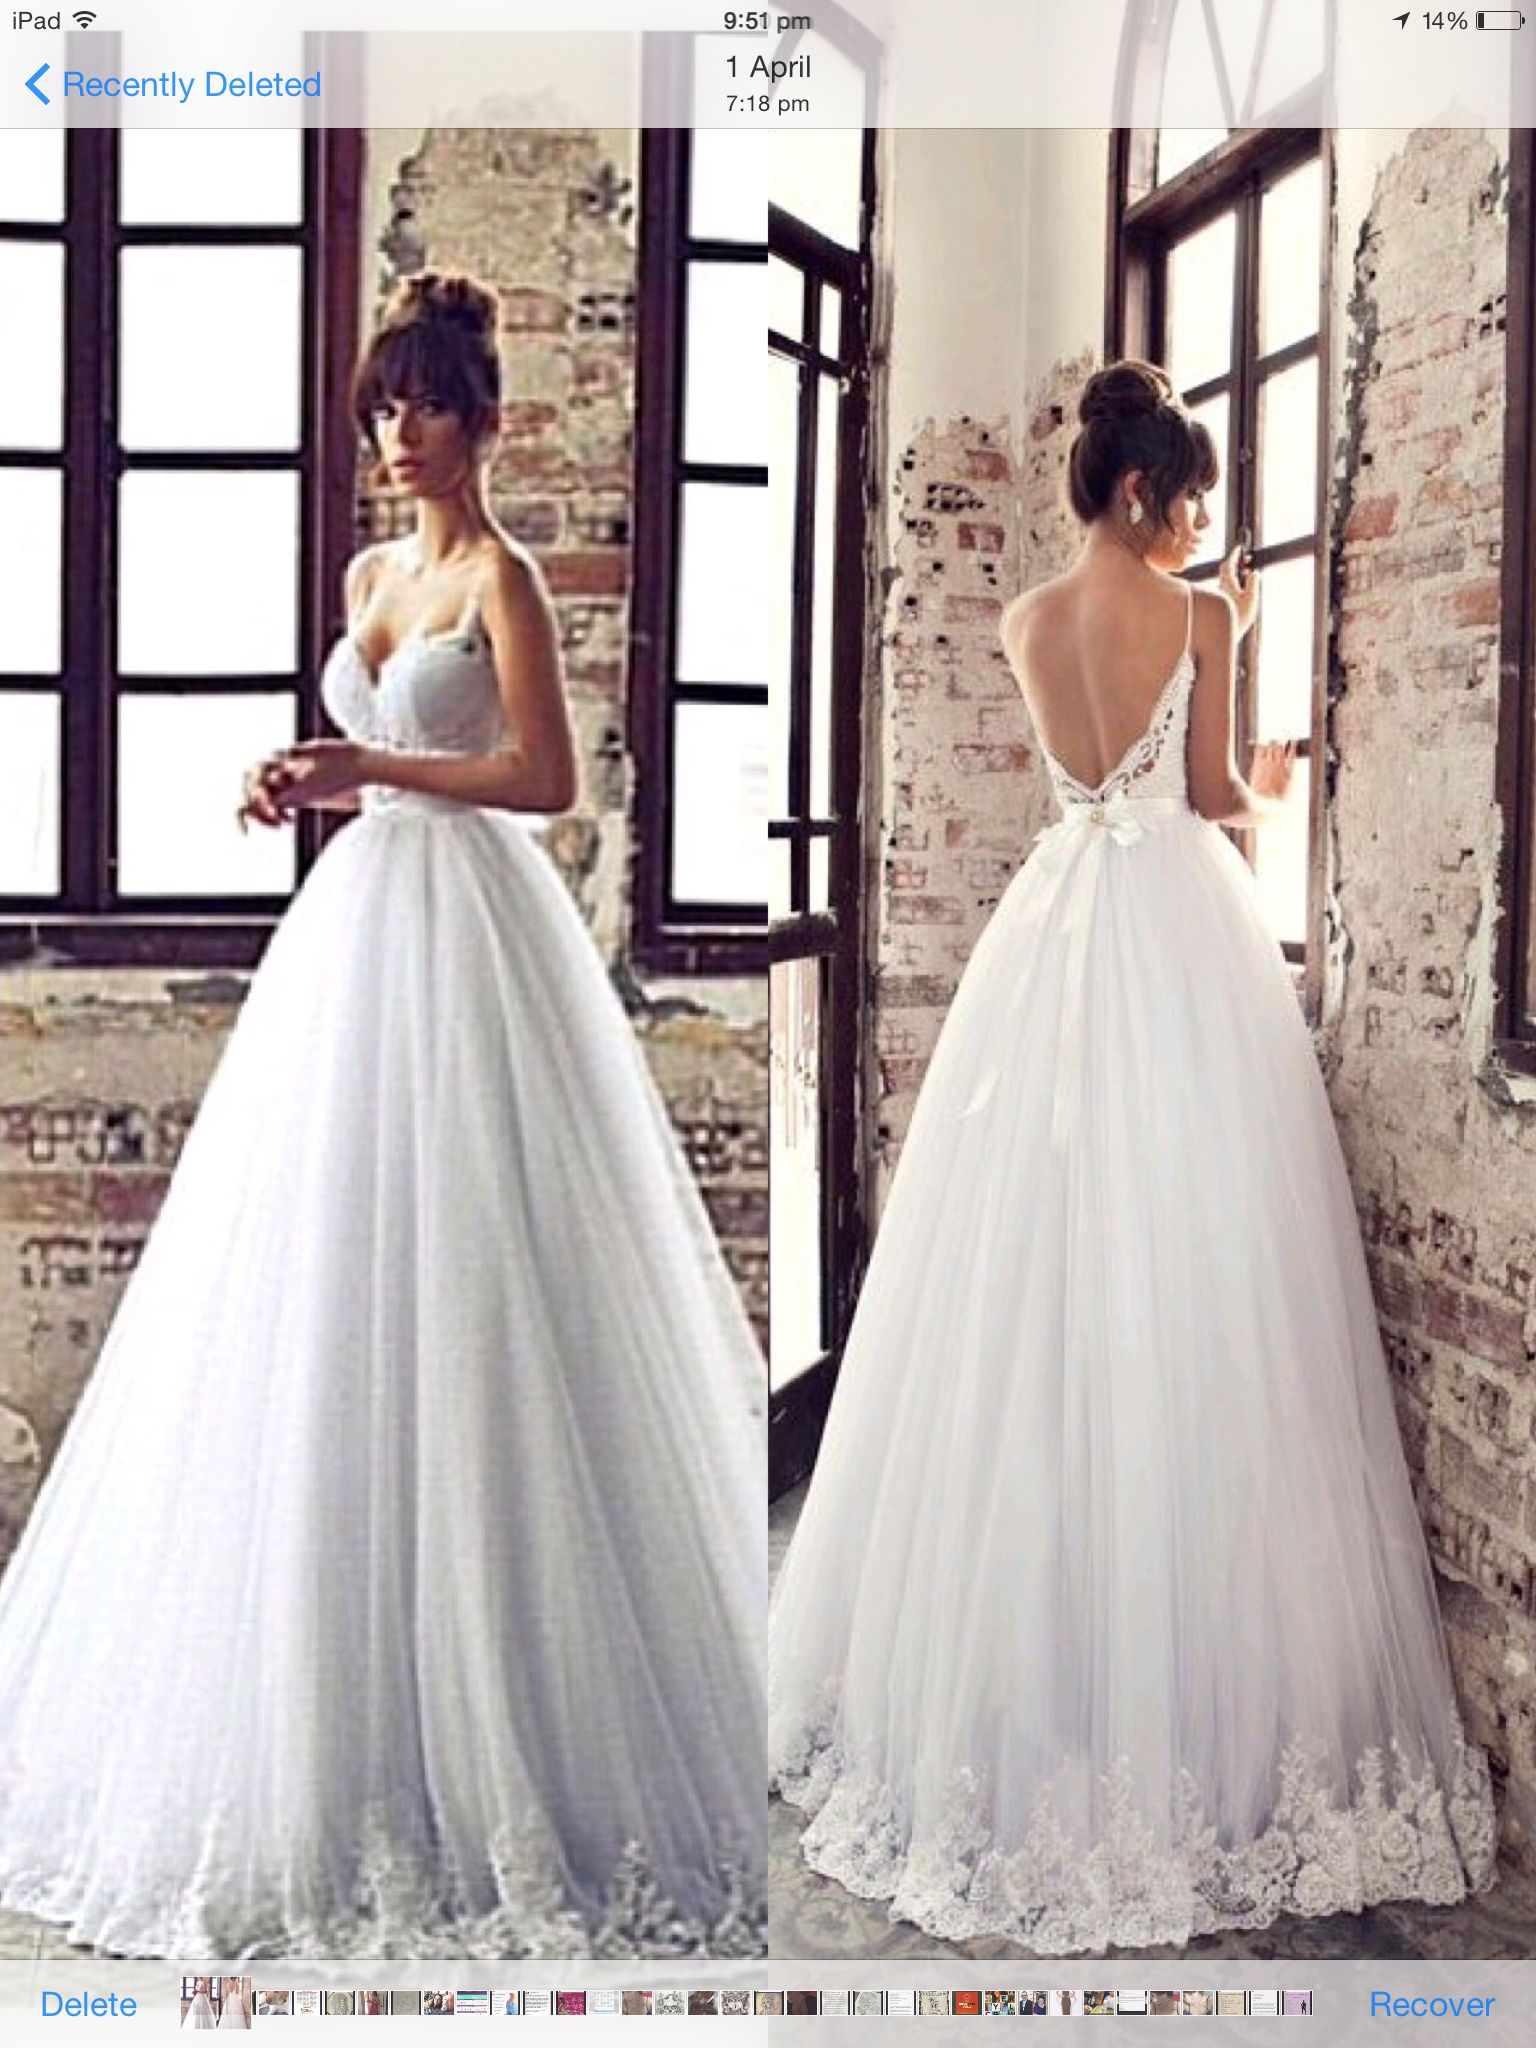 Trying on wedding dresses for the first time  My dream dress for my wedding  Beautiful Dresses  Pinterest